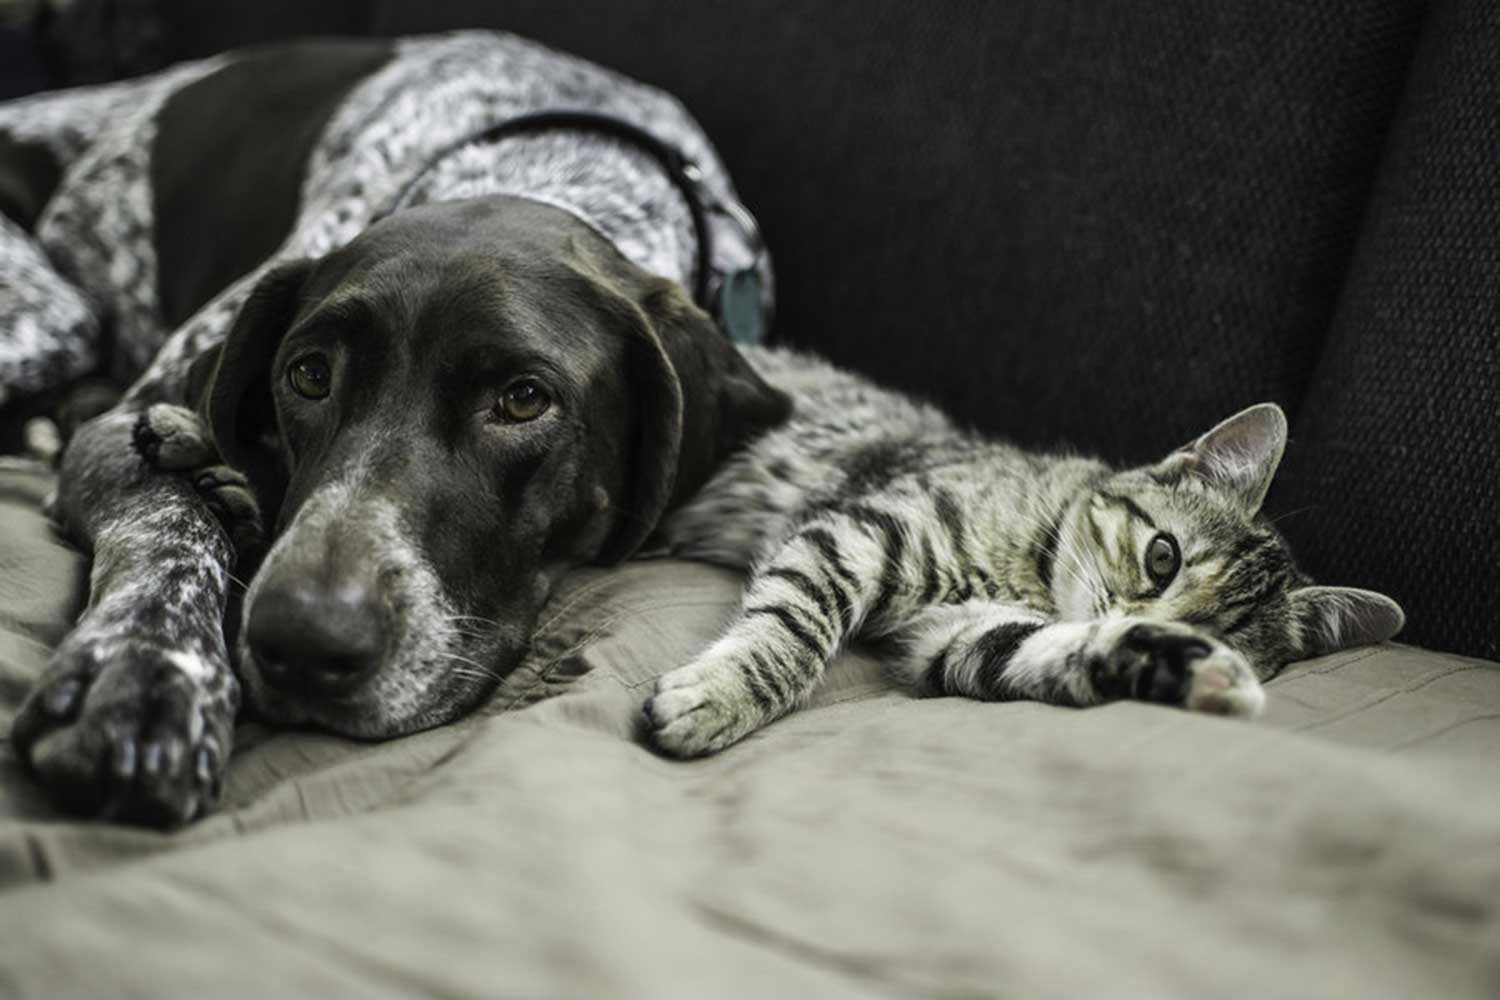 Dog and cat laying together on sofa